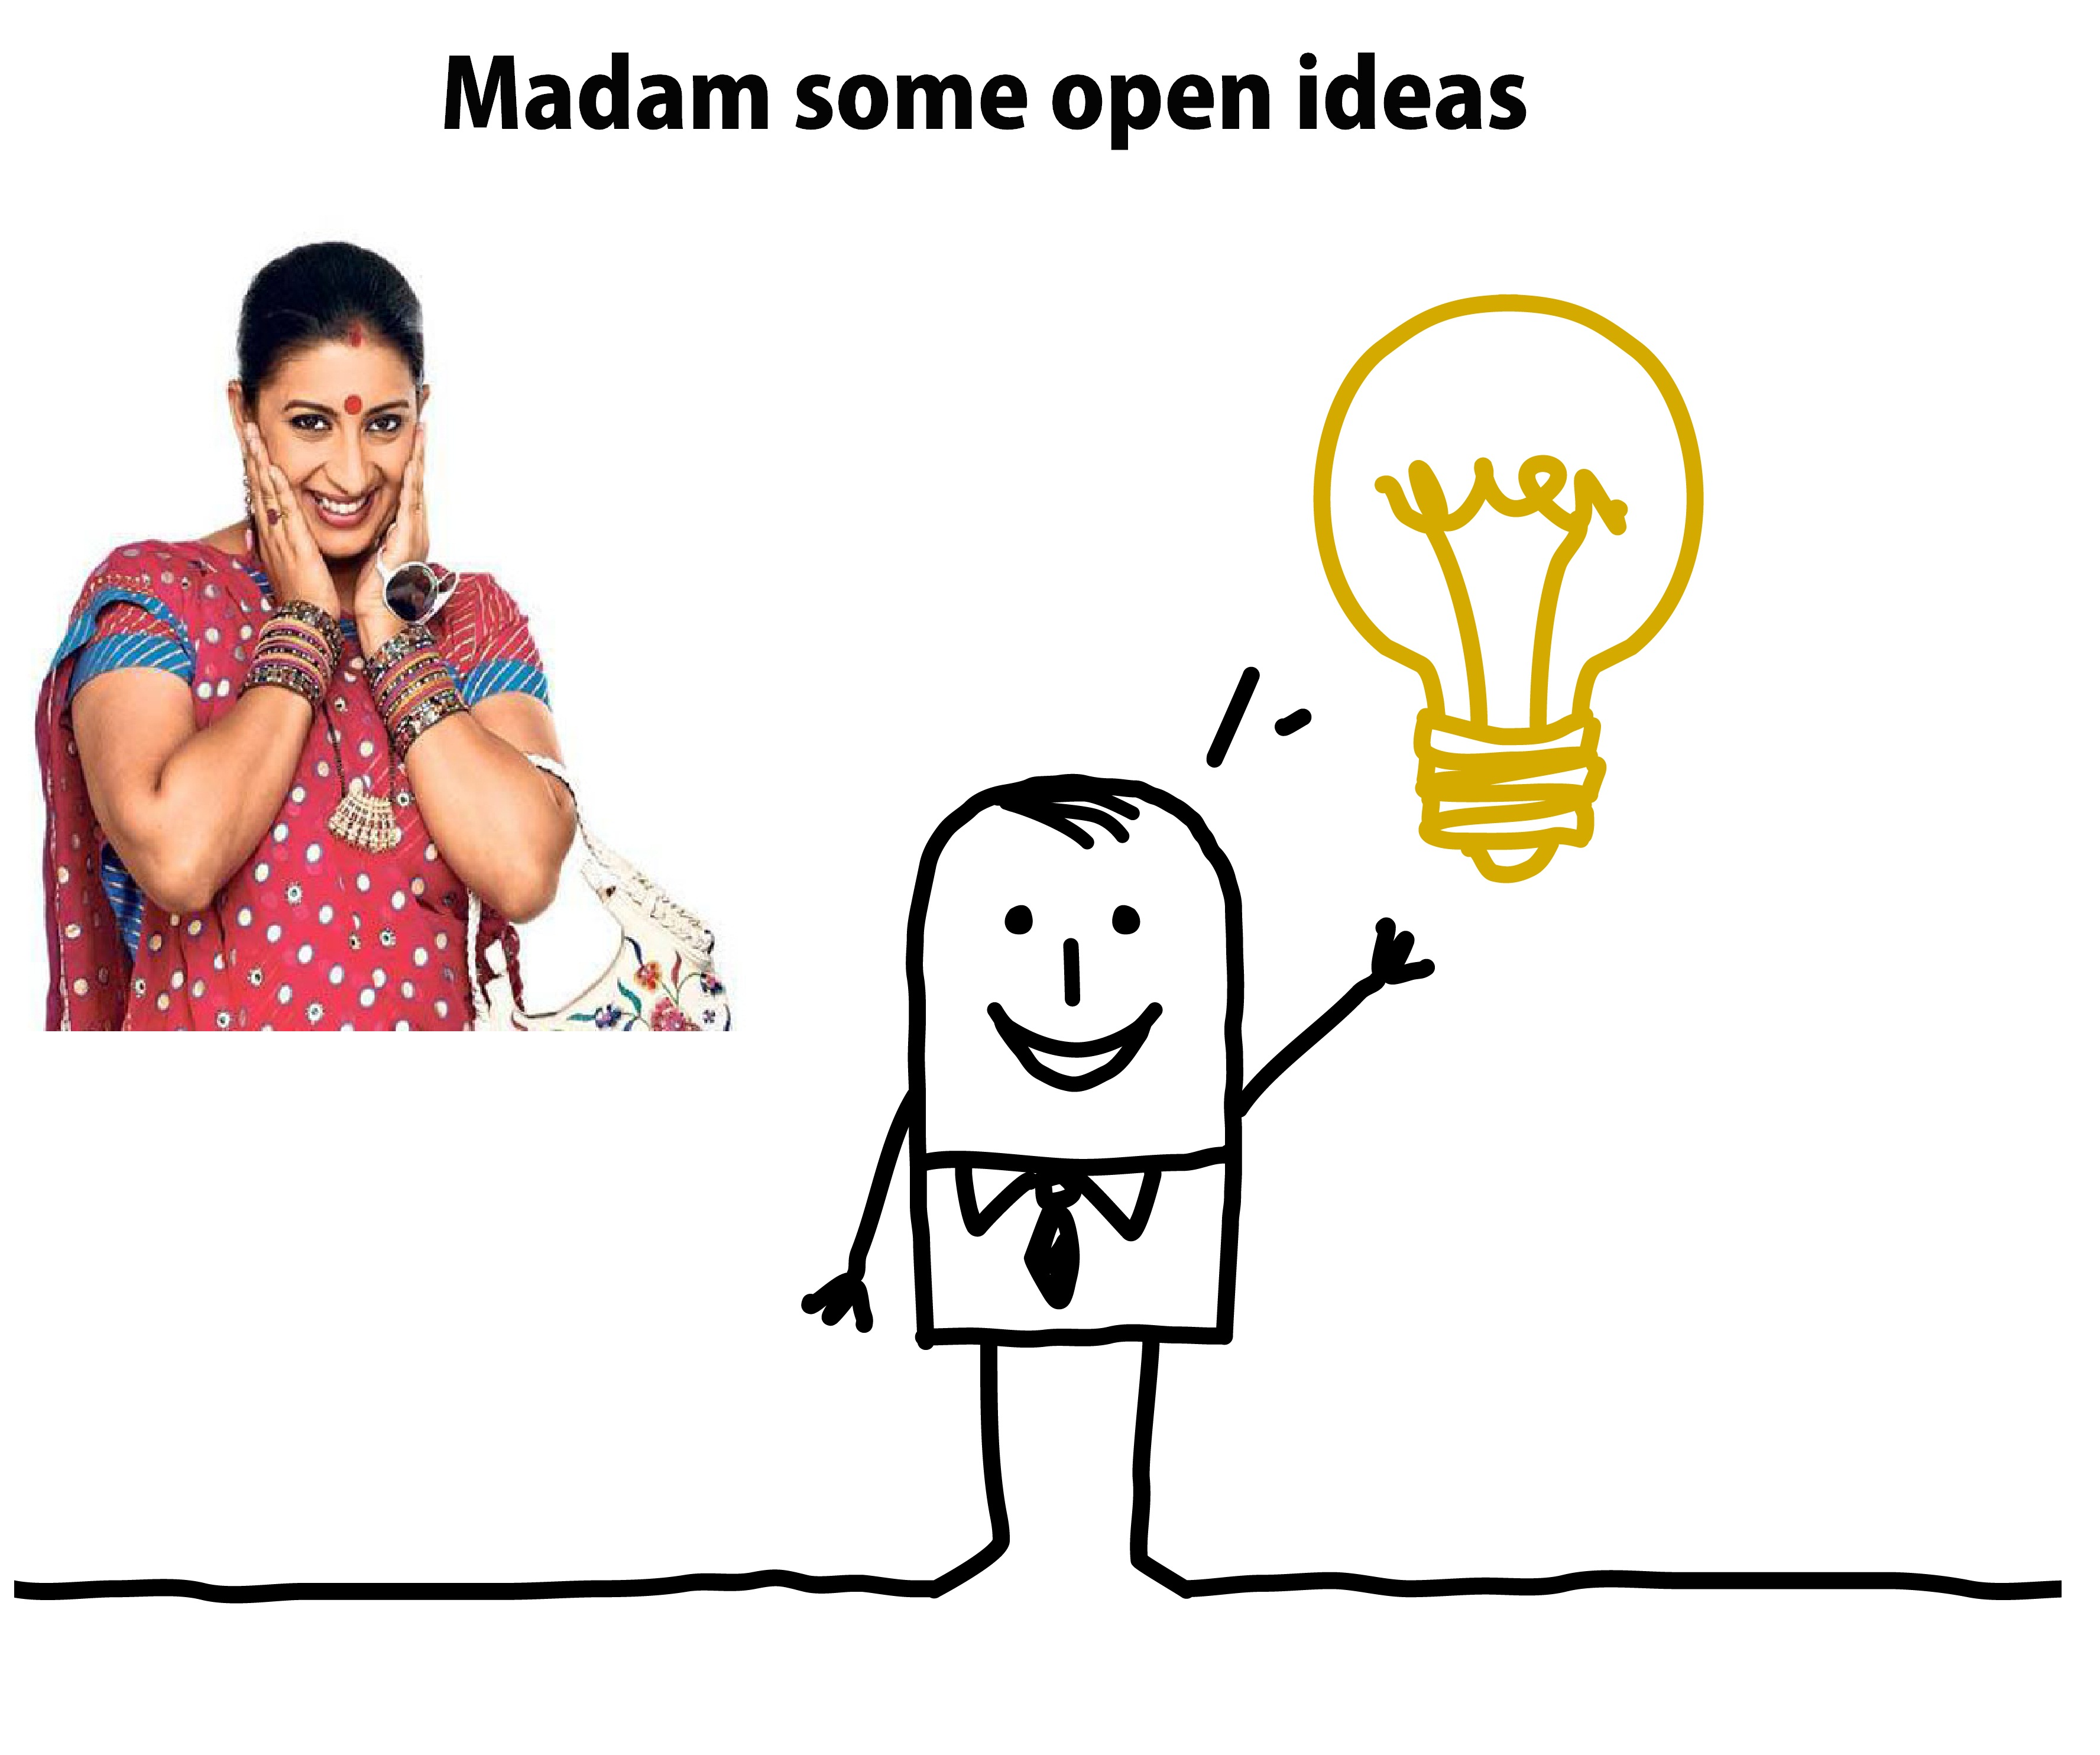 Letter to Smriti Irani: Madam, some open ideas for you!